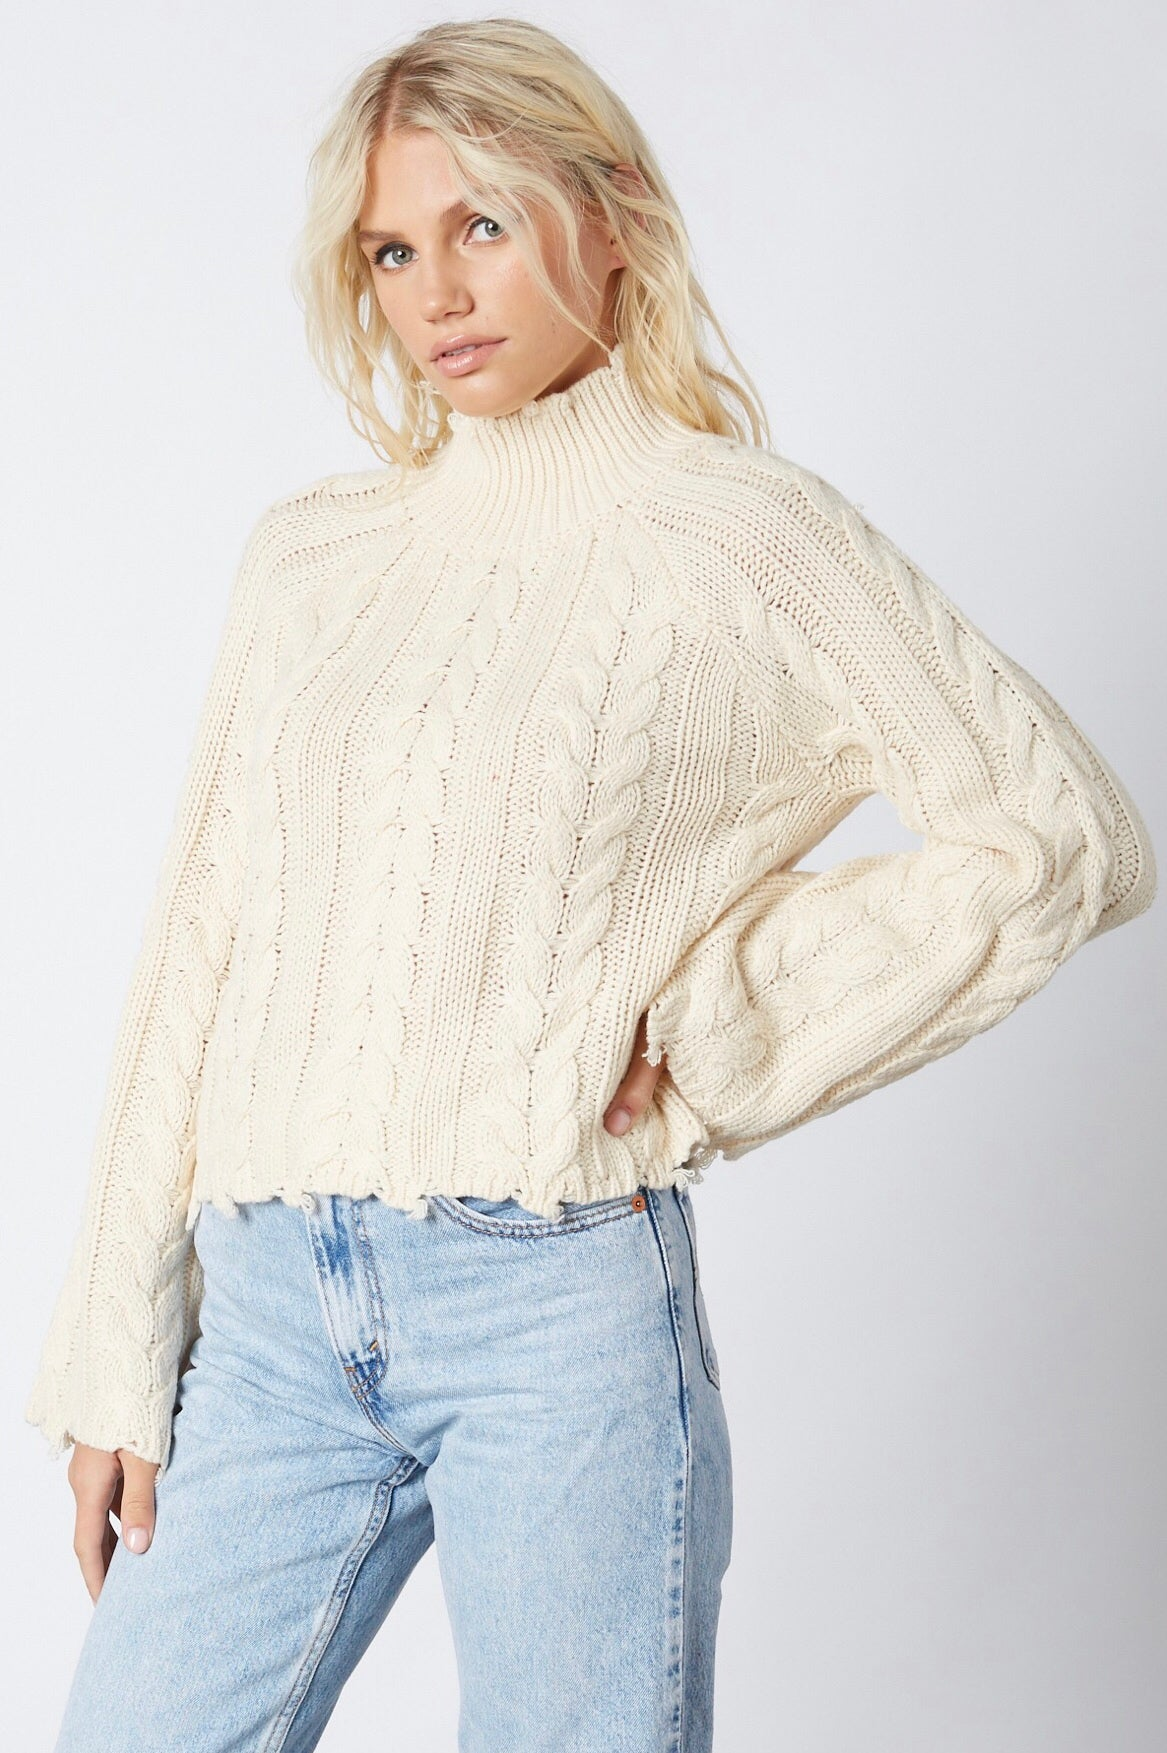 CLOUD 9 CABLE KNIT TURTLENECK CROPPED SWEATER - FINAL SALE